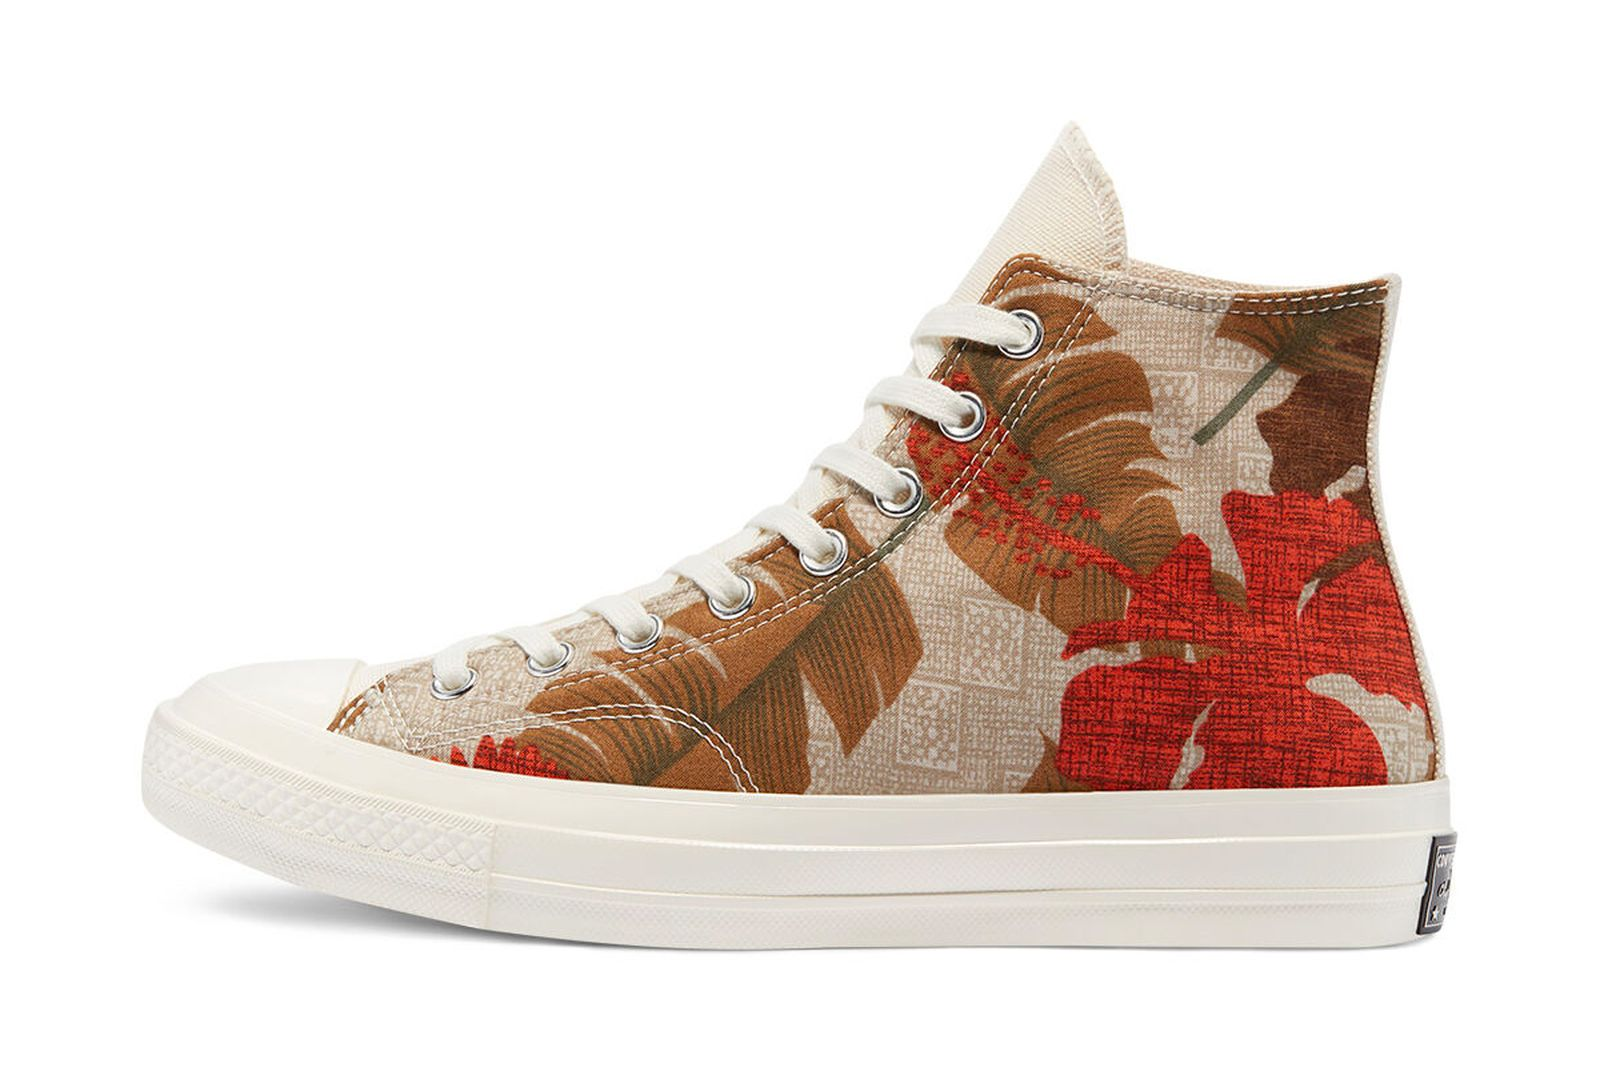 Beyond Retro x Converse Chuck 70 Tropical Shirts: How to Buy Now